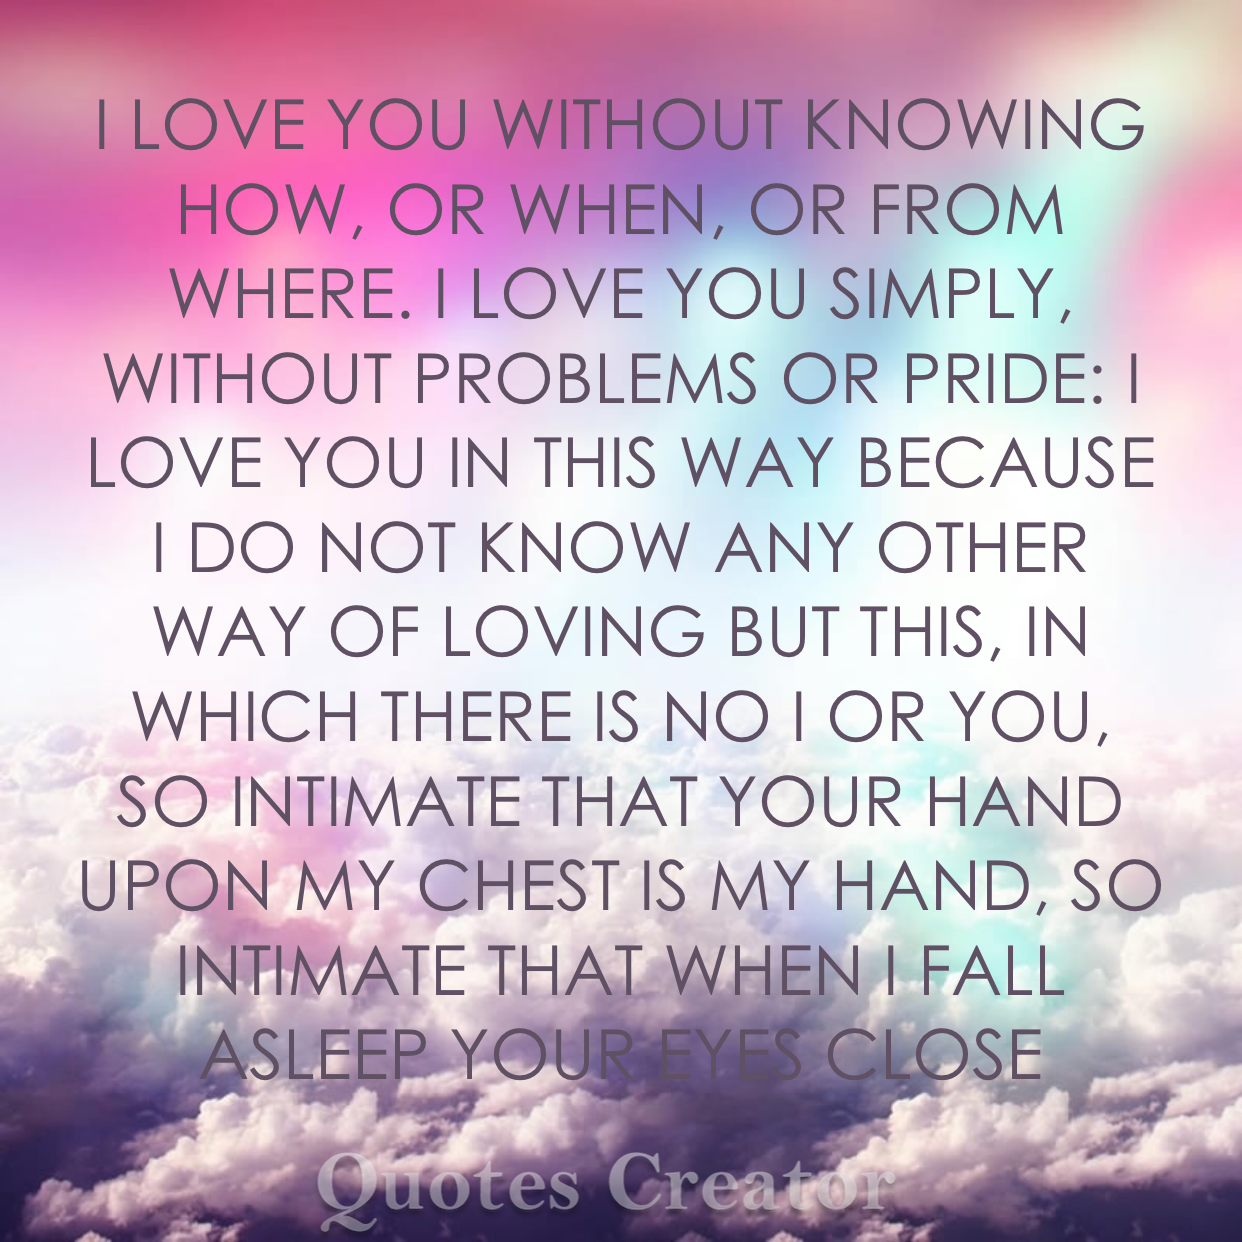 Romantic I Love You Quotes Pinangel On Romantic Love Quotes  Pinterest  Romantic